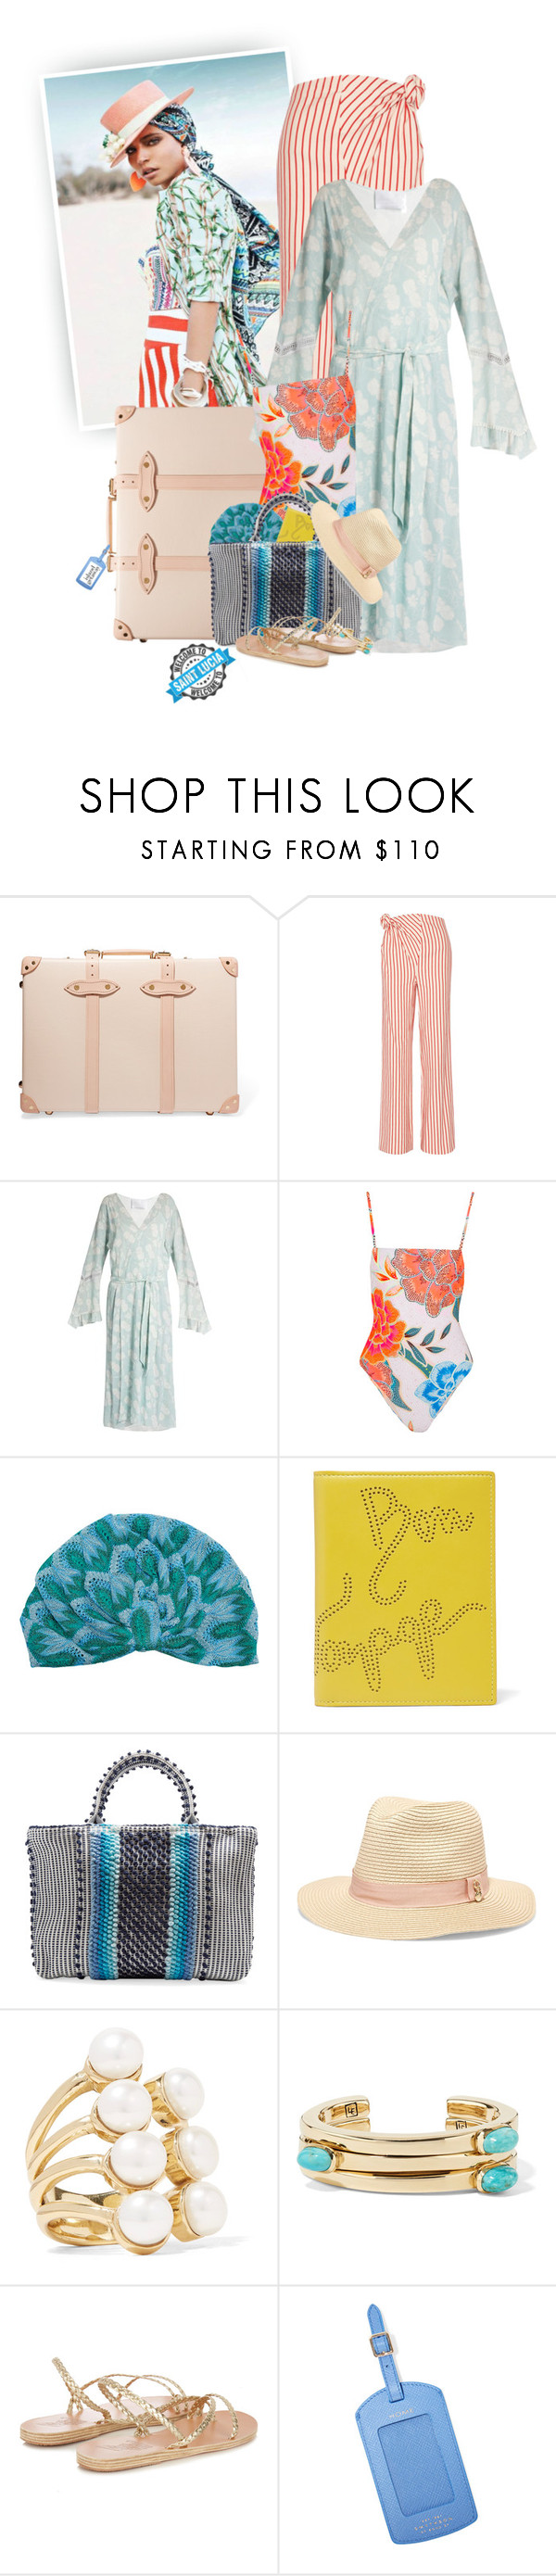 """""""You Know That I Want To Get Away, I Cannot Wait For Another Day..."""" by hollowpoint-smile ❤ liked on Polyvore featuring Globe-Trotter, Rosie Assoulin, Athena Procopiou, Mara Hoffman, Missoni Mare, Smythson, Antonello Tedde, Melissa Odabash, Cornelia Webb and Lisa Eisner"""